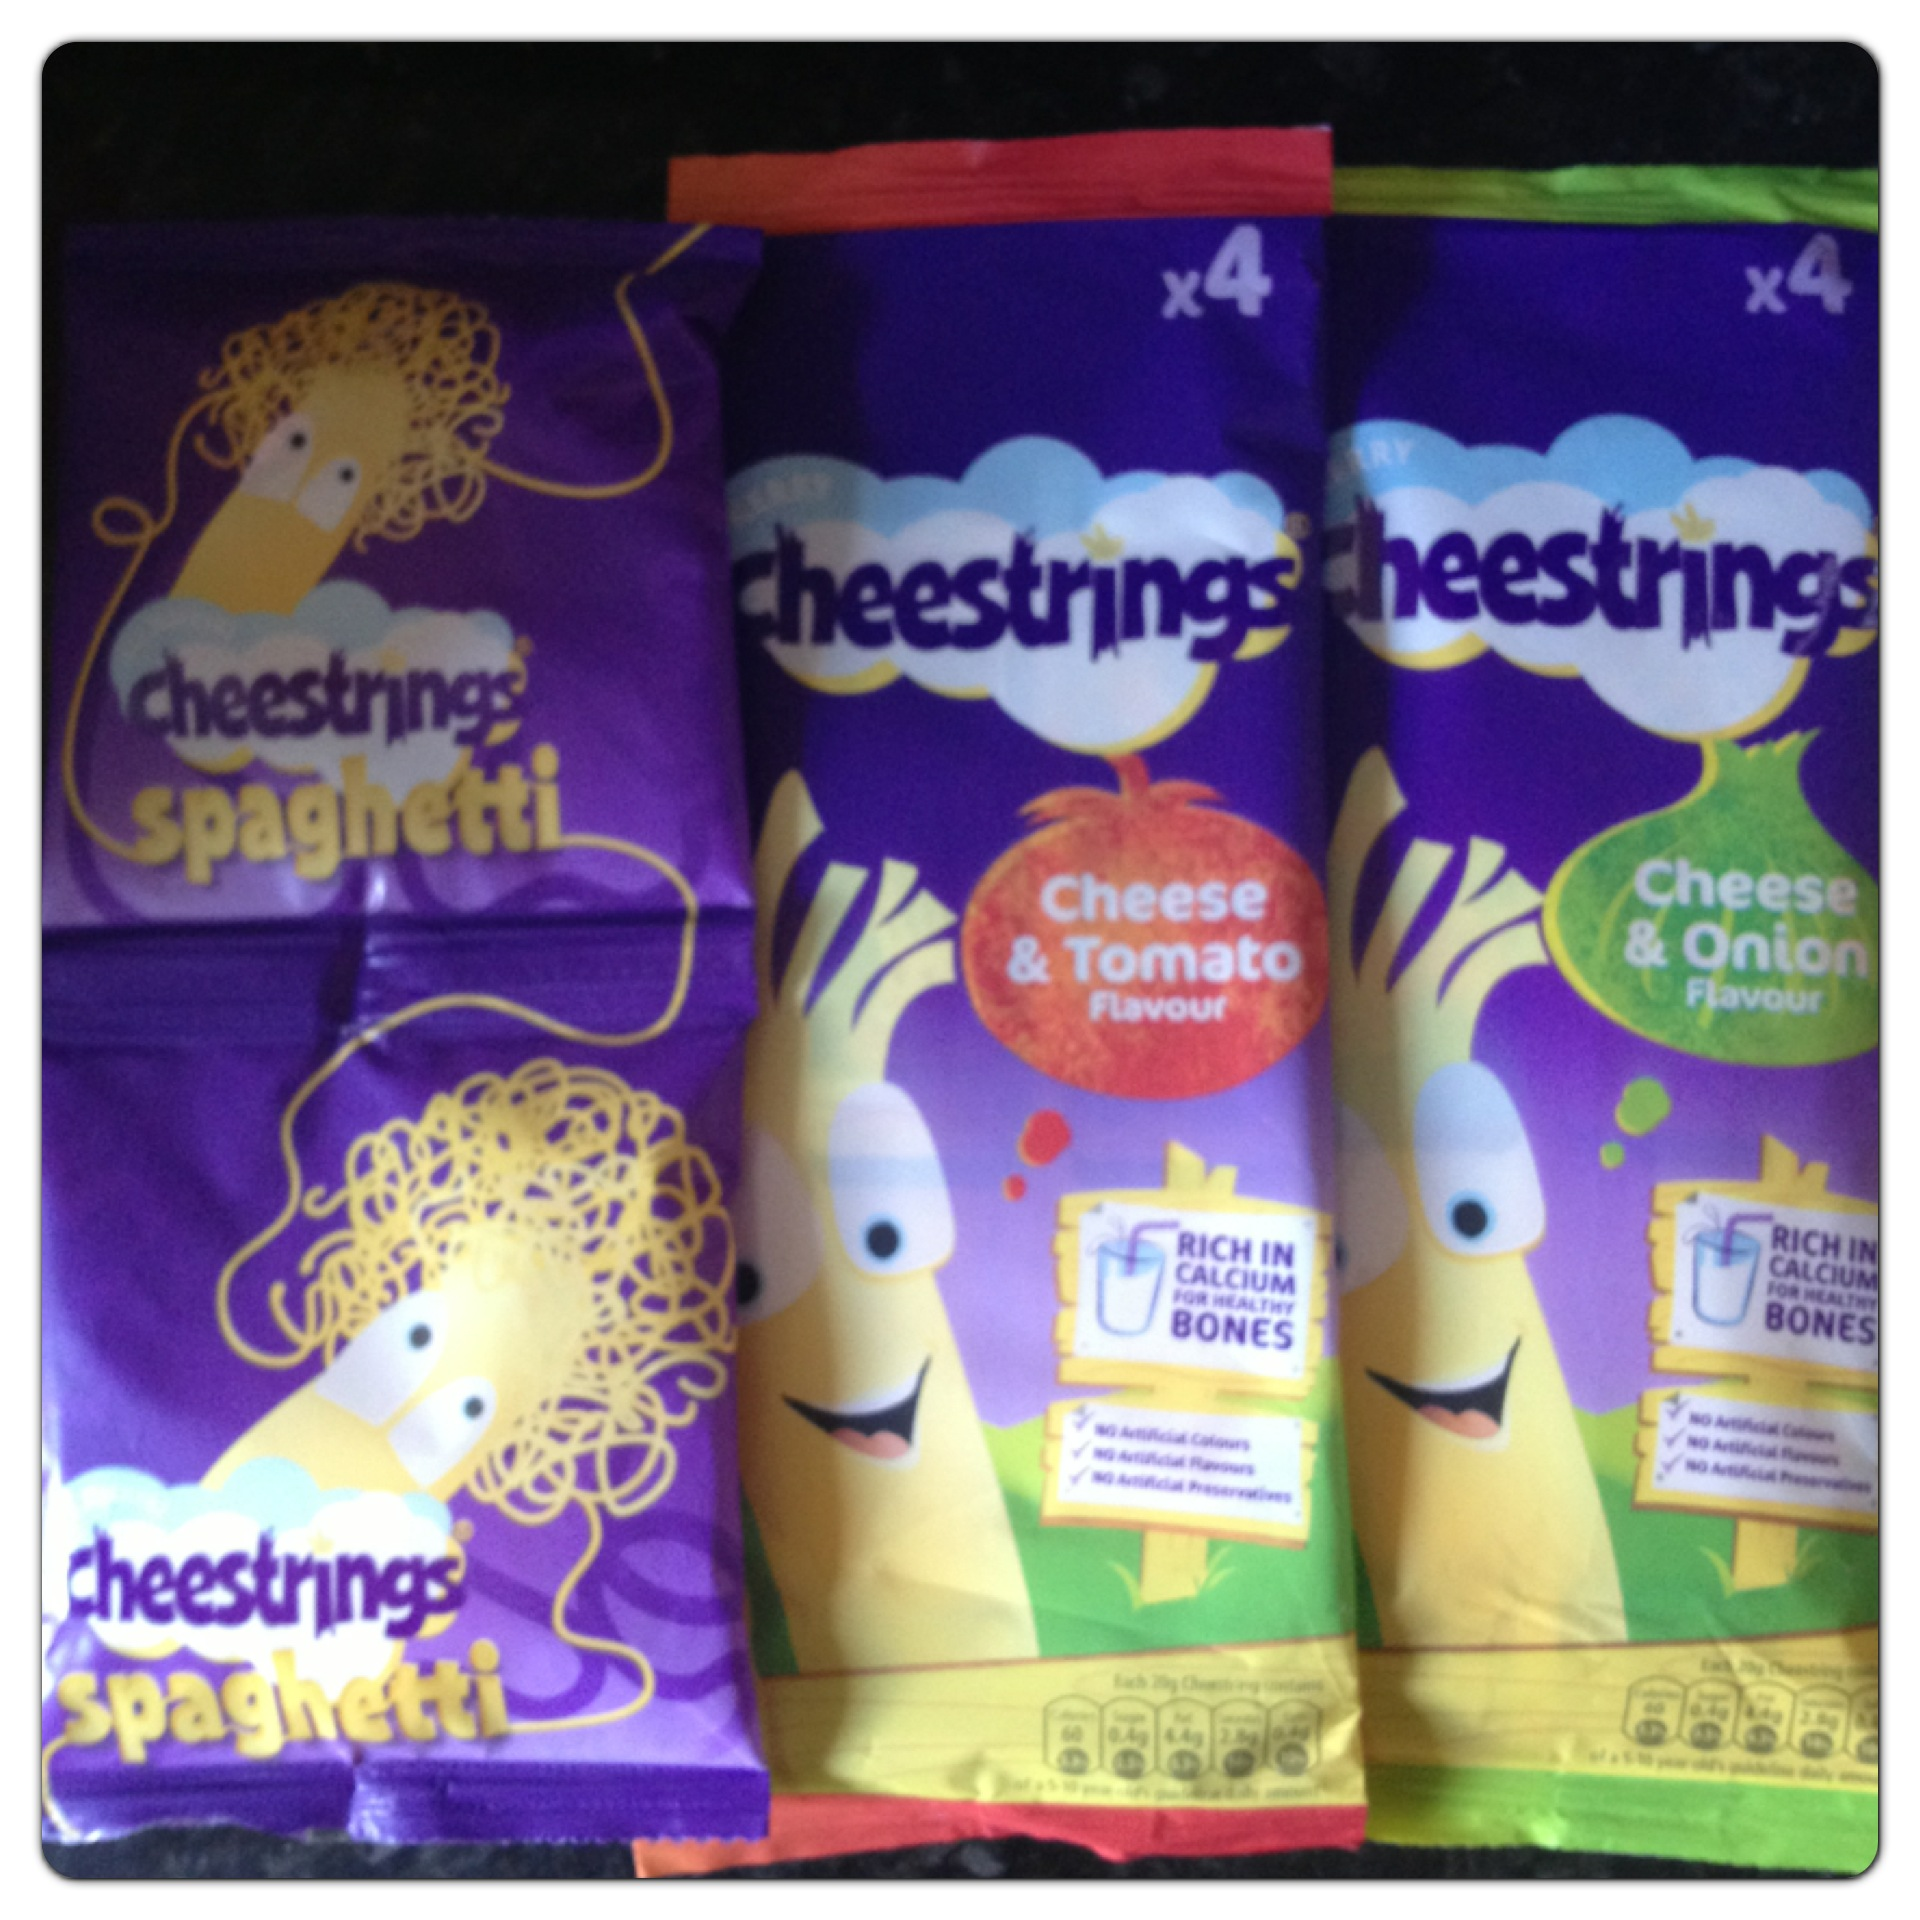 Cheestrings Products